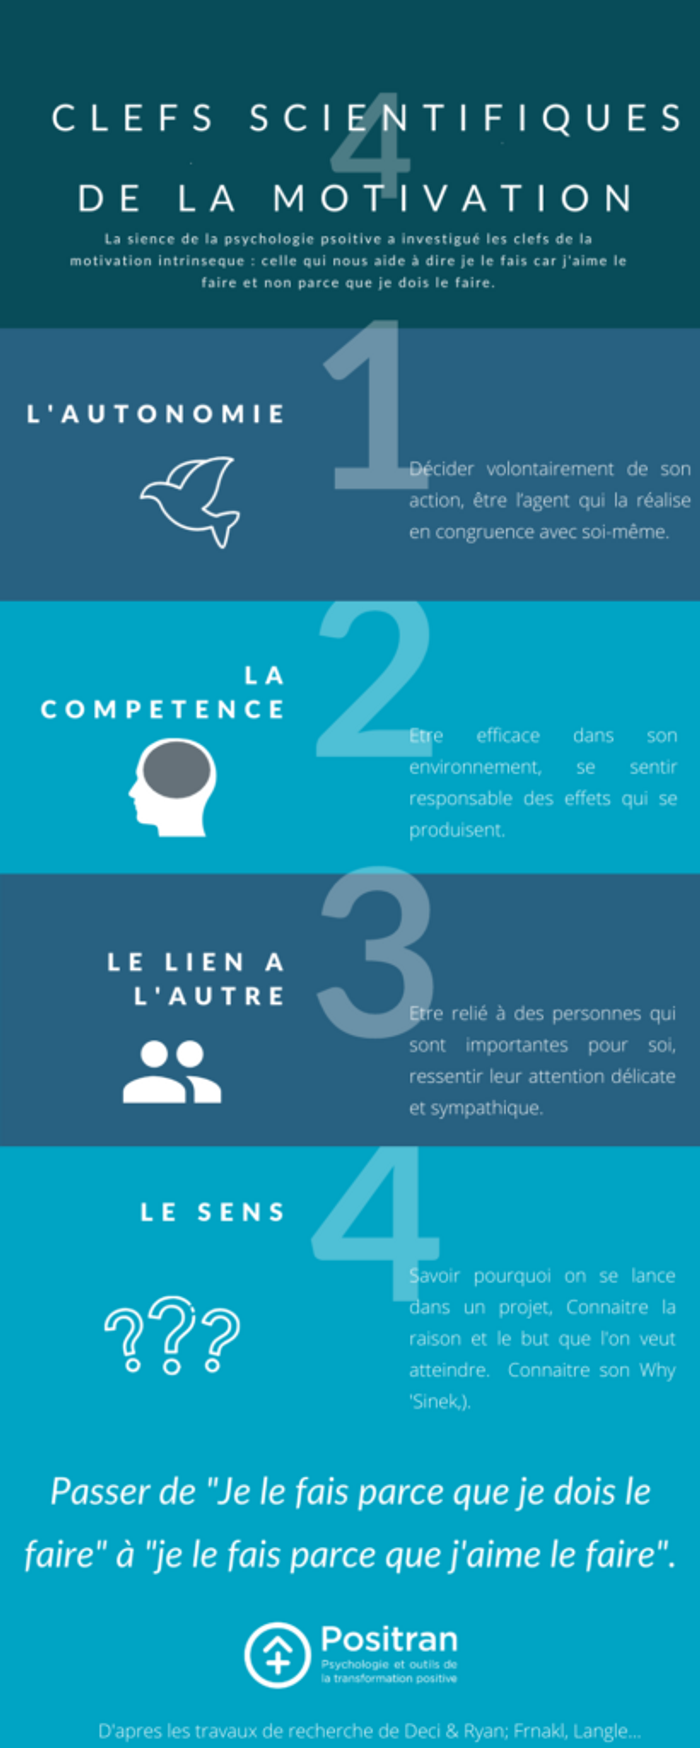 Clefs scientifiques de la motivation